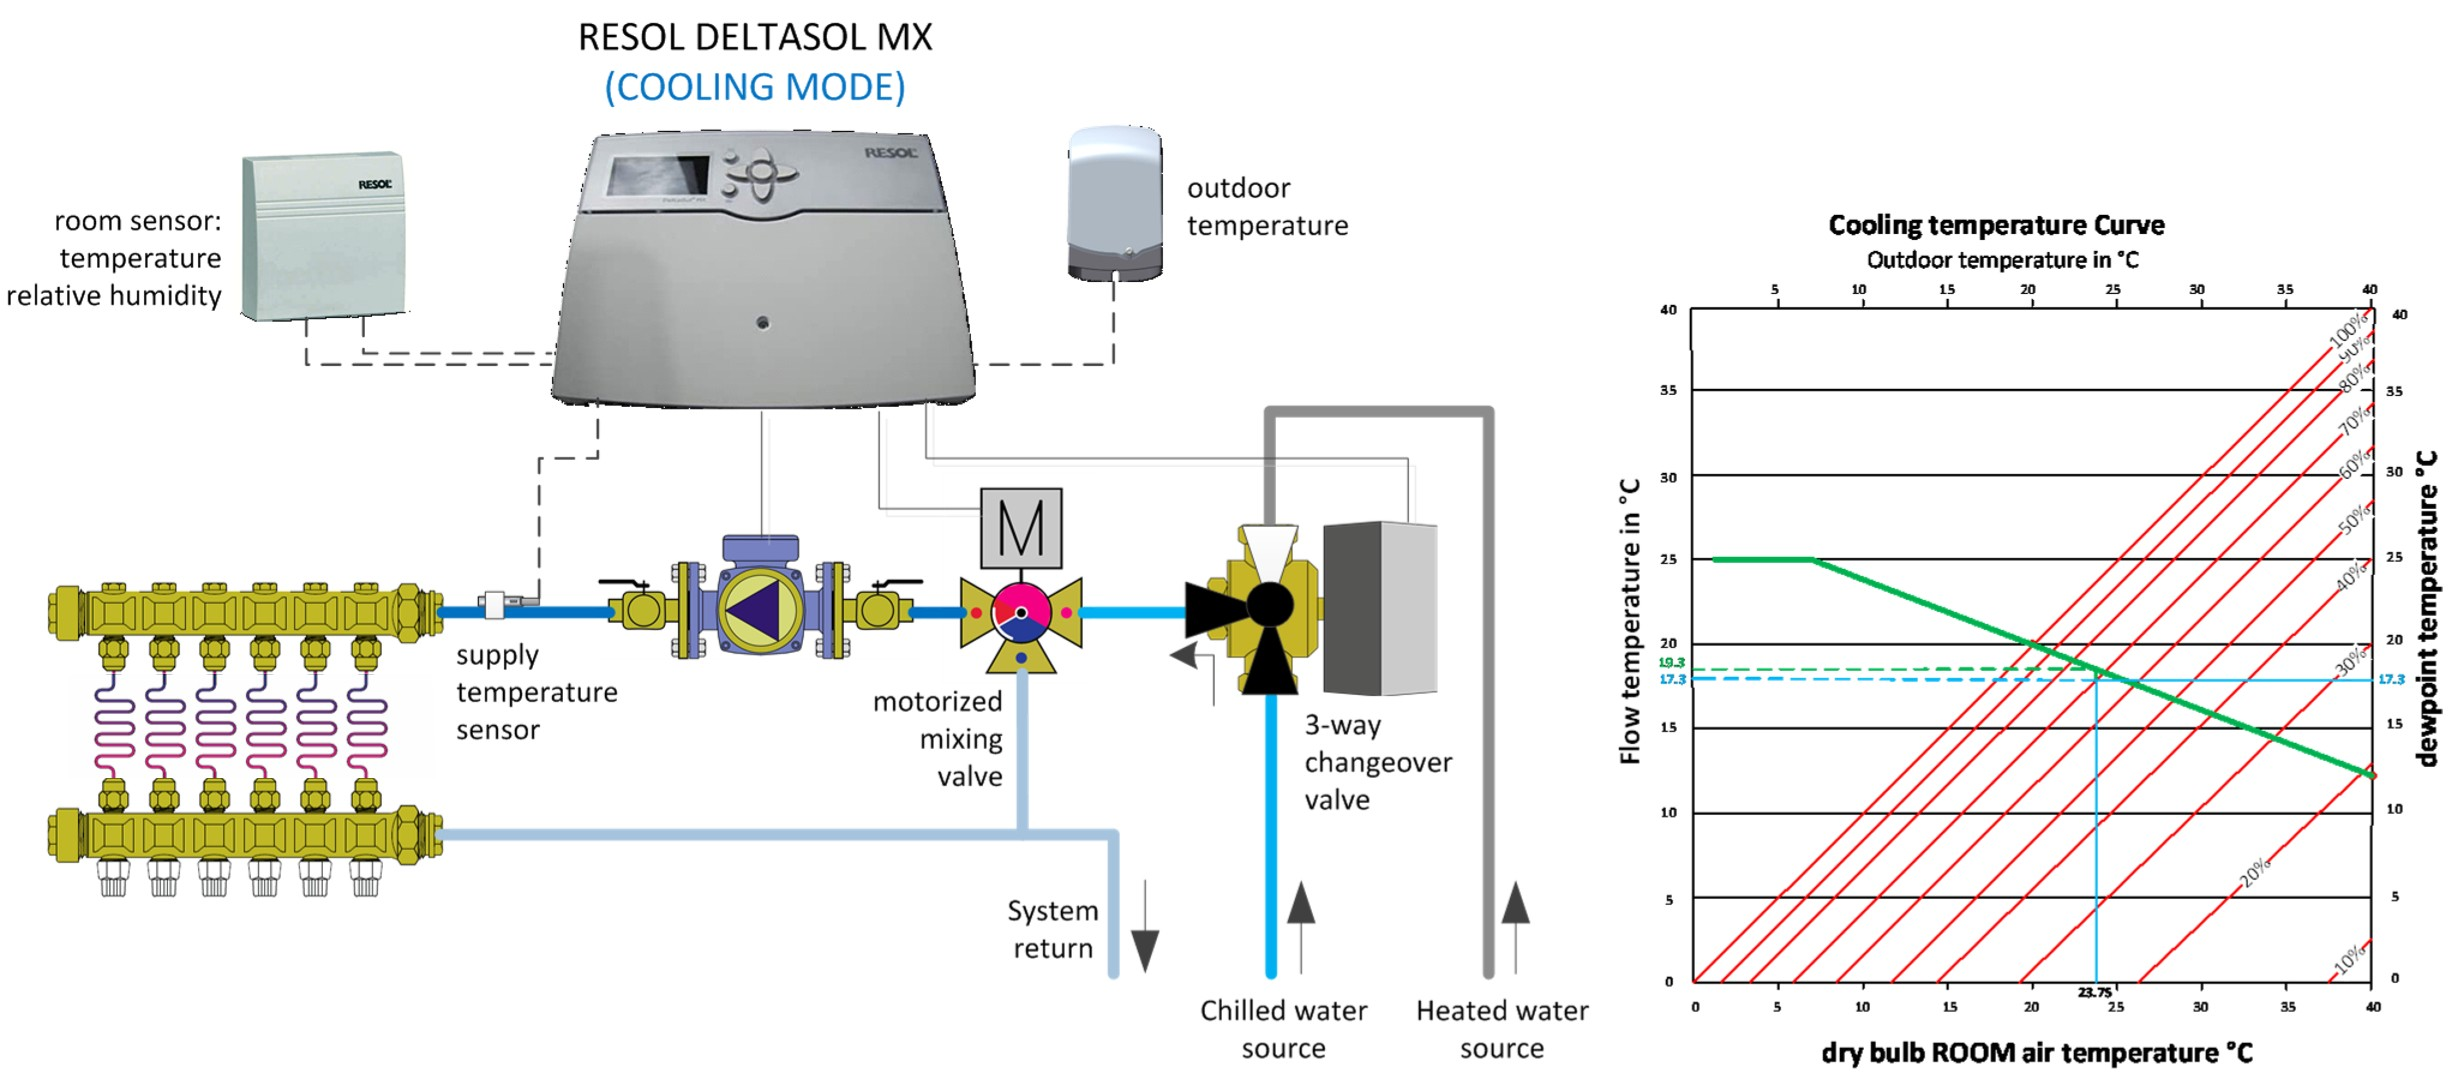 RESOL MX COOLING MODE